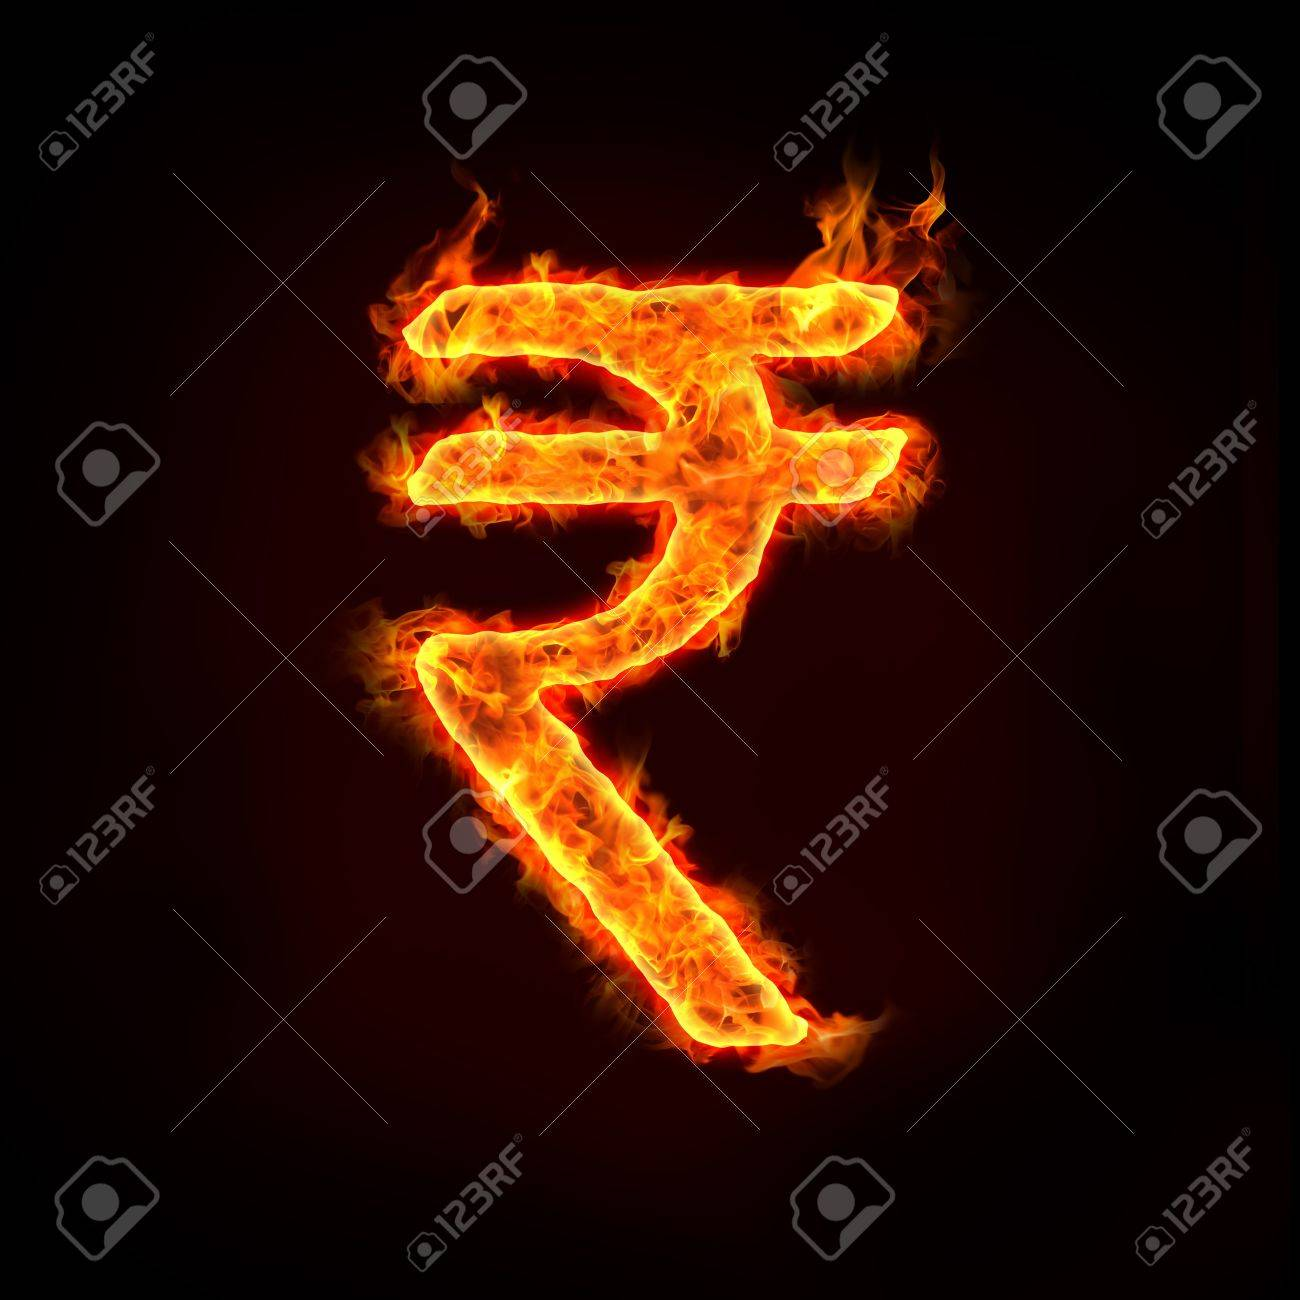 indian rupee, india currency symbol. Stock Photo - 11821116